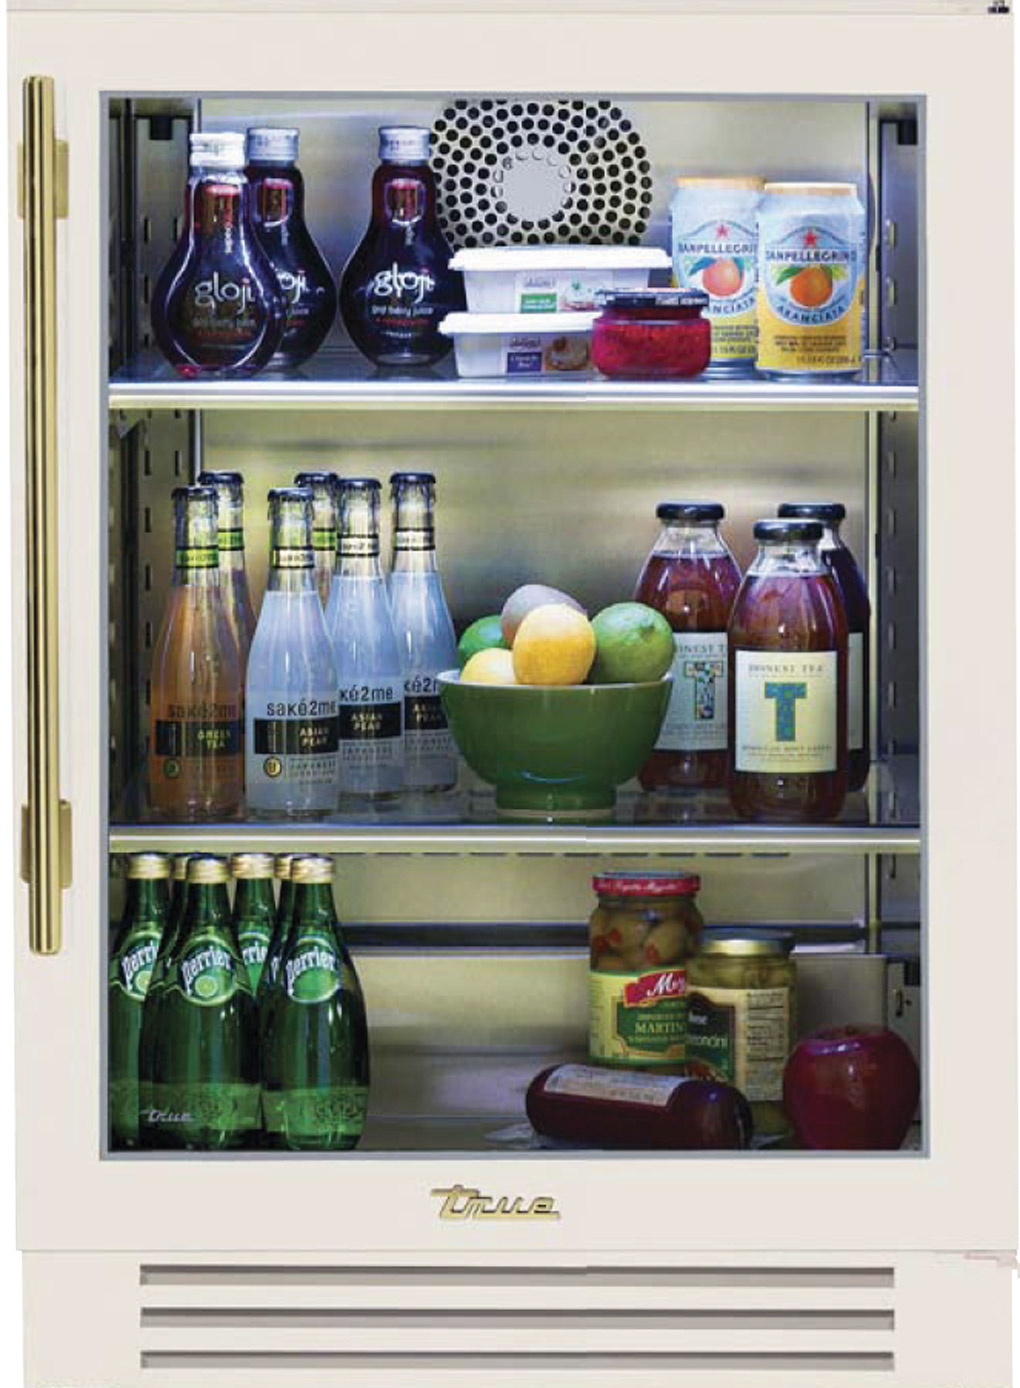 Undercounter beverage fridge in antique white with brass handle, filled with snacks and beverages.